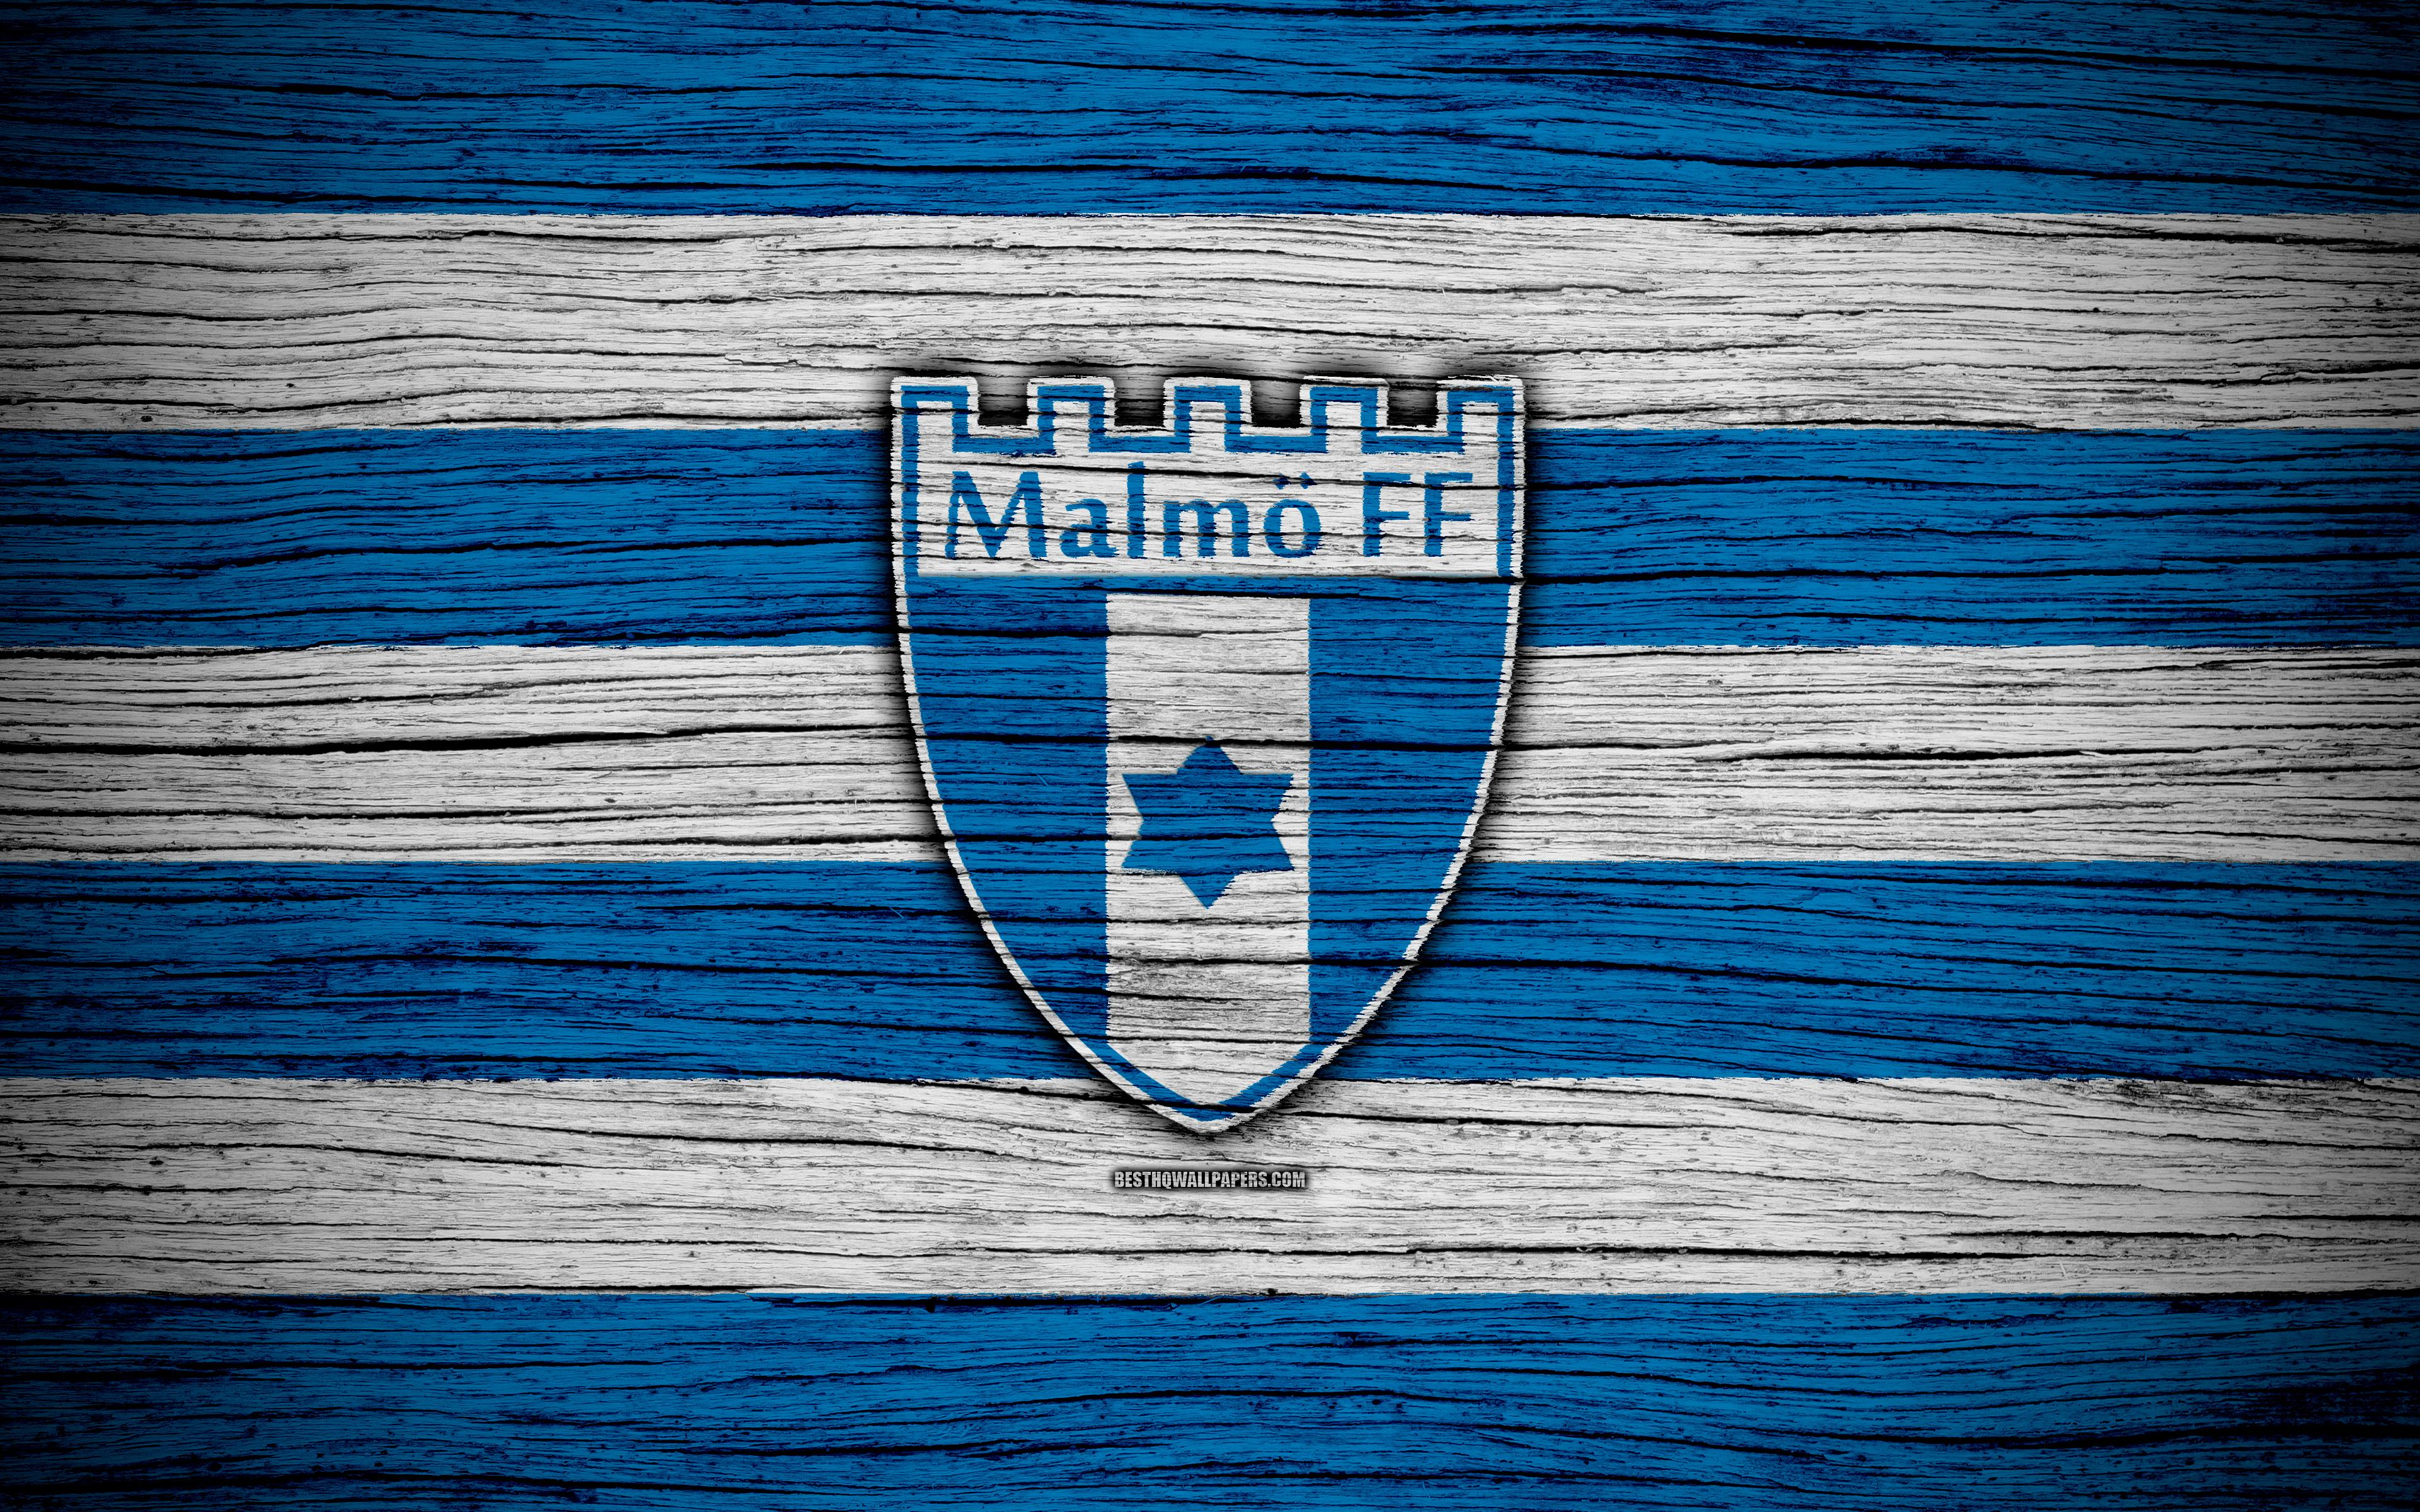 Download wallpapers Malmo FC, 4k, Allsvenskan, soccer, football club